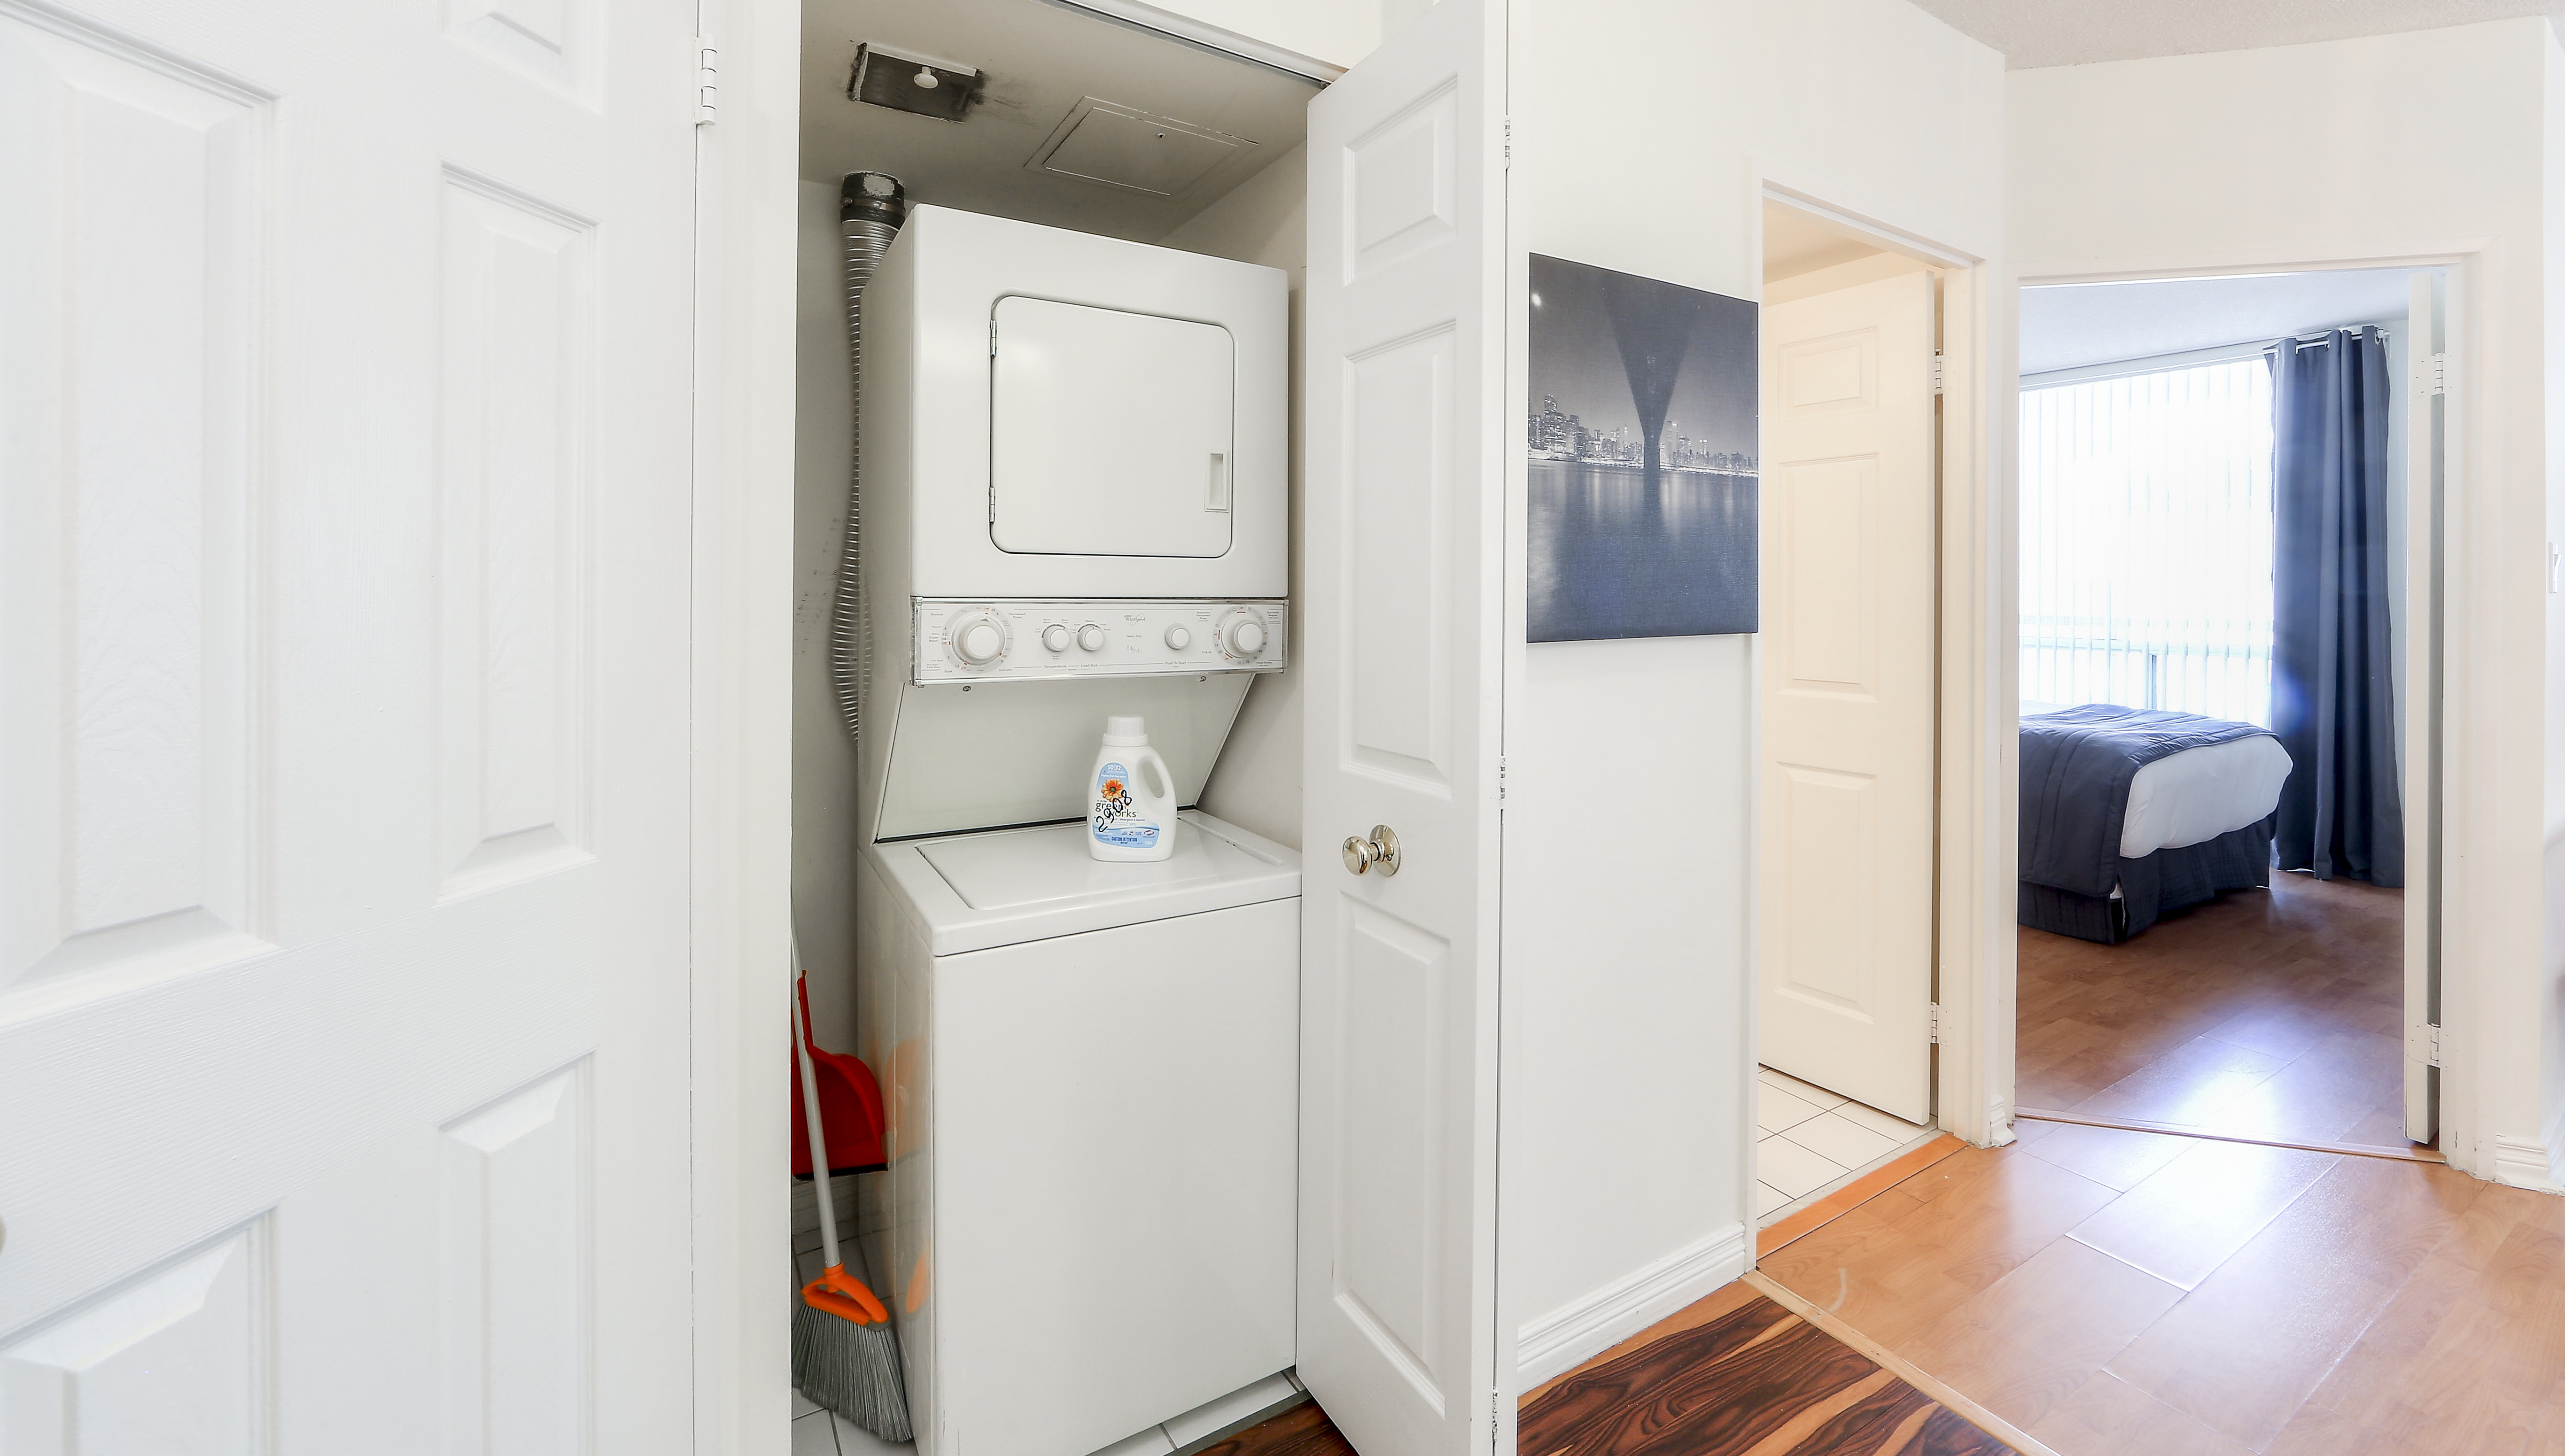 Canada Suites 1 Bedroom Executive Suite - The Laundry Room